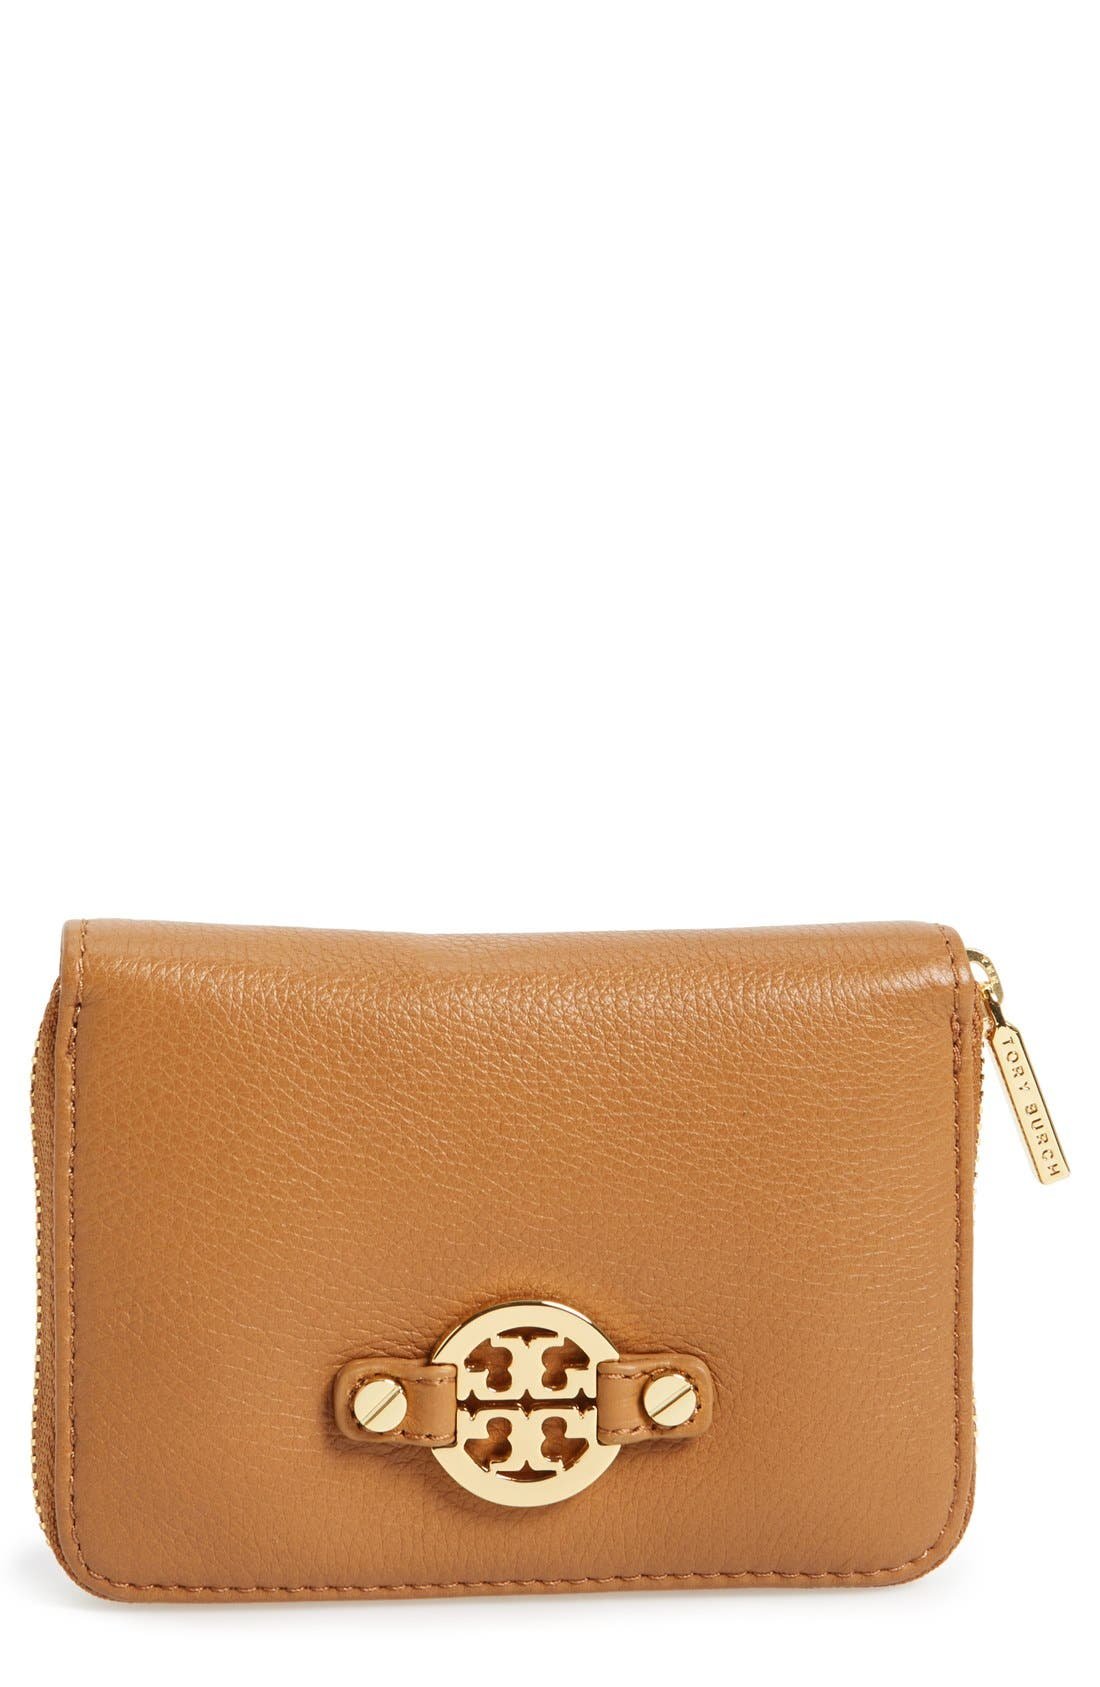 Alternate Image 1 Selected - Tory Burch 'Amanda' Leather Coin Case